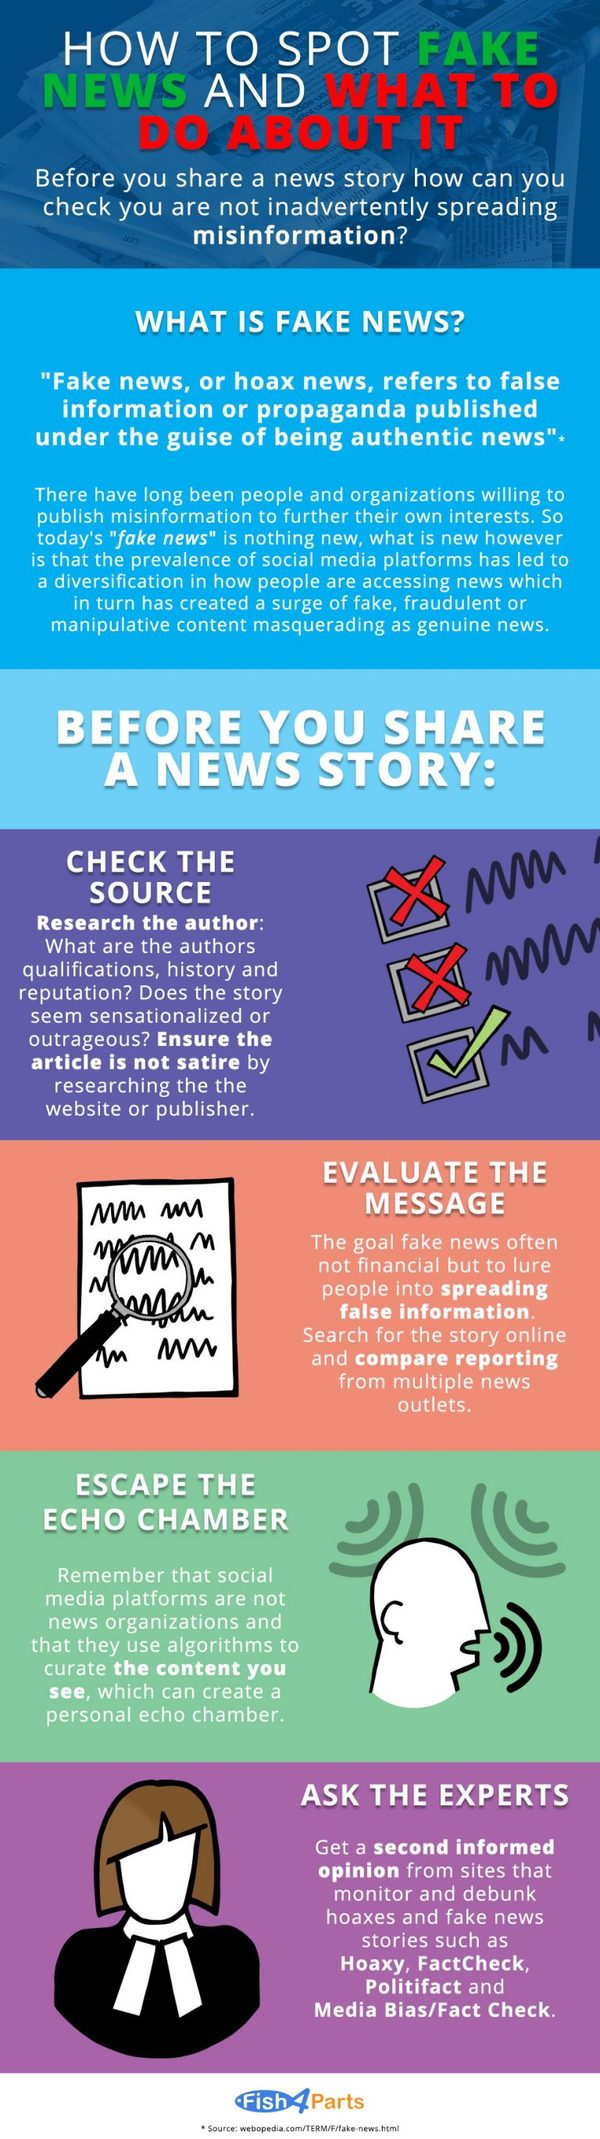 How to Spot Fake News and What to do About It